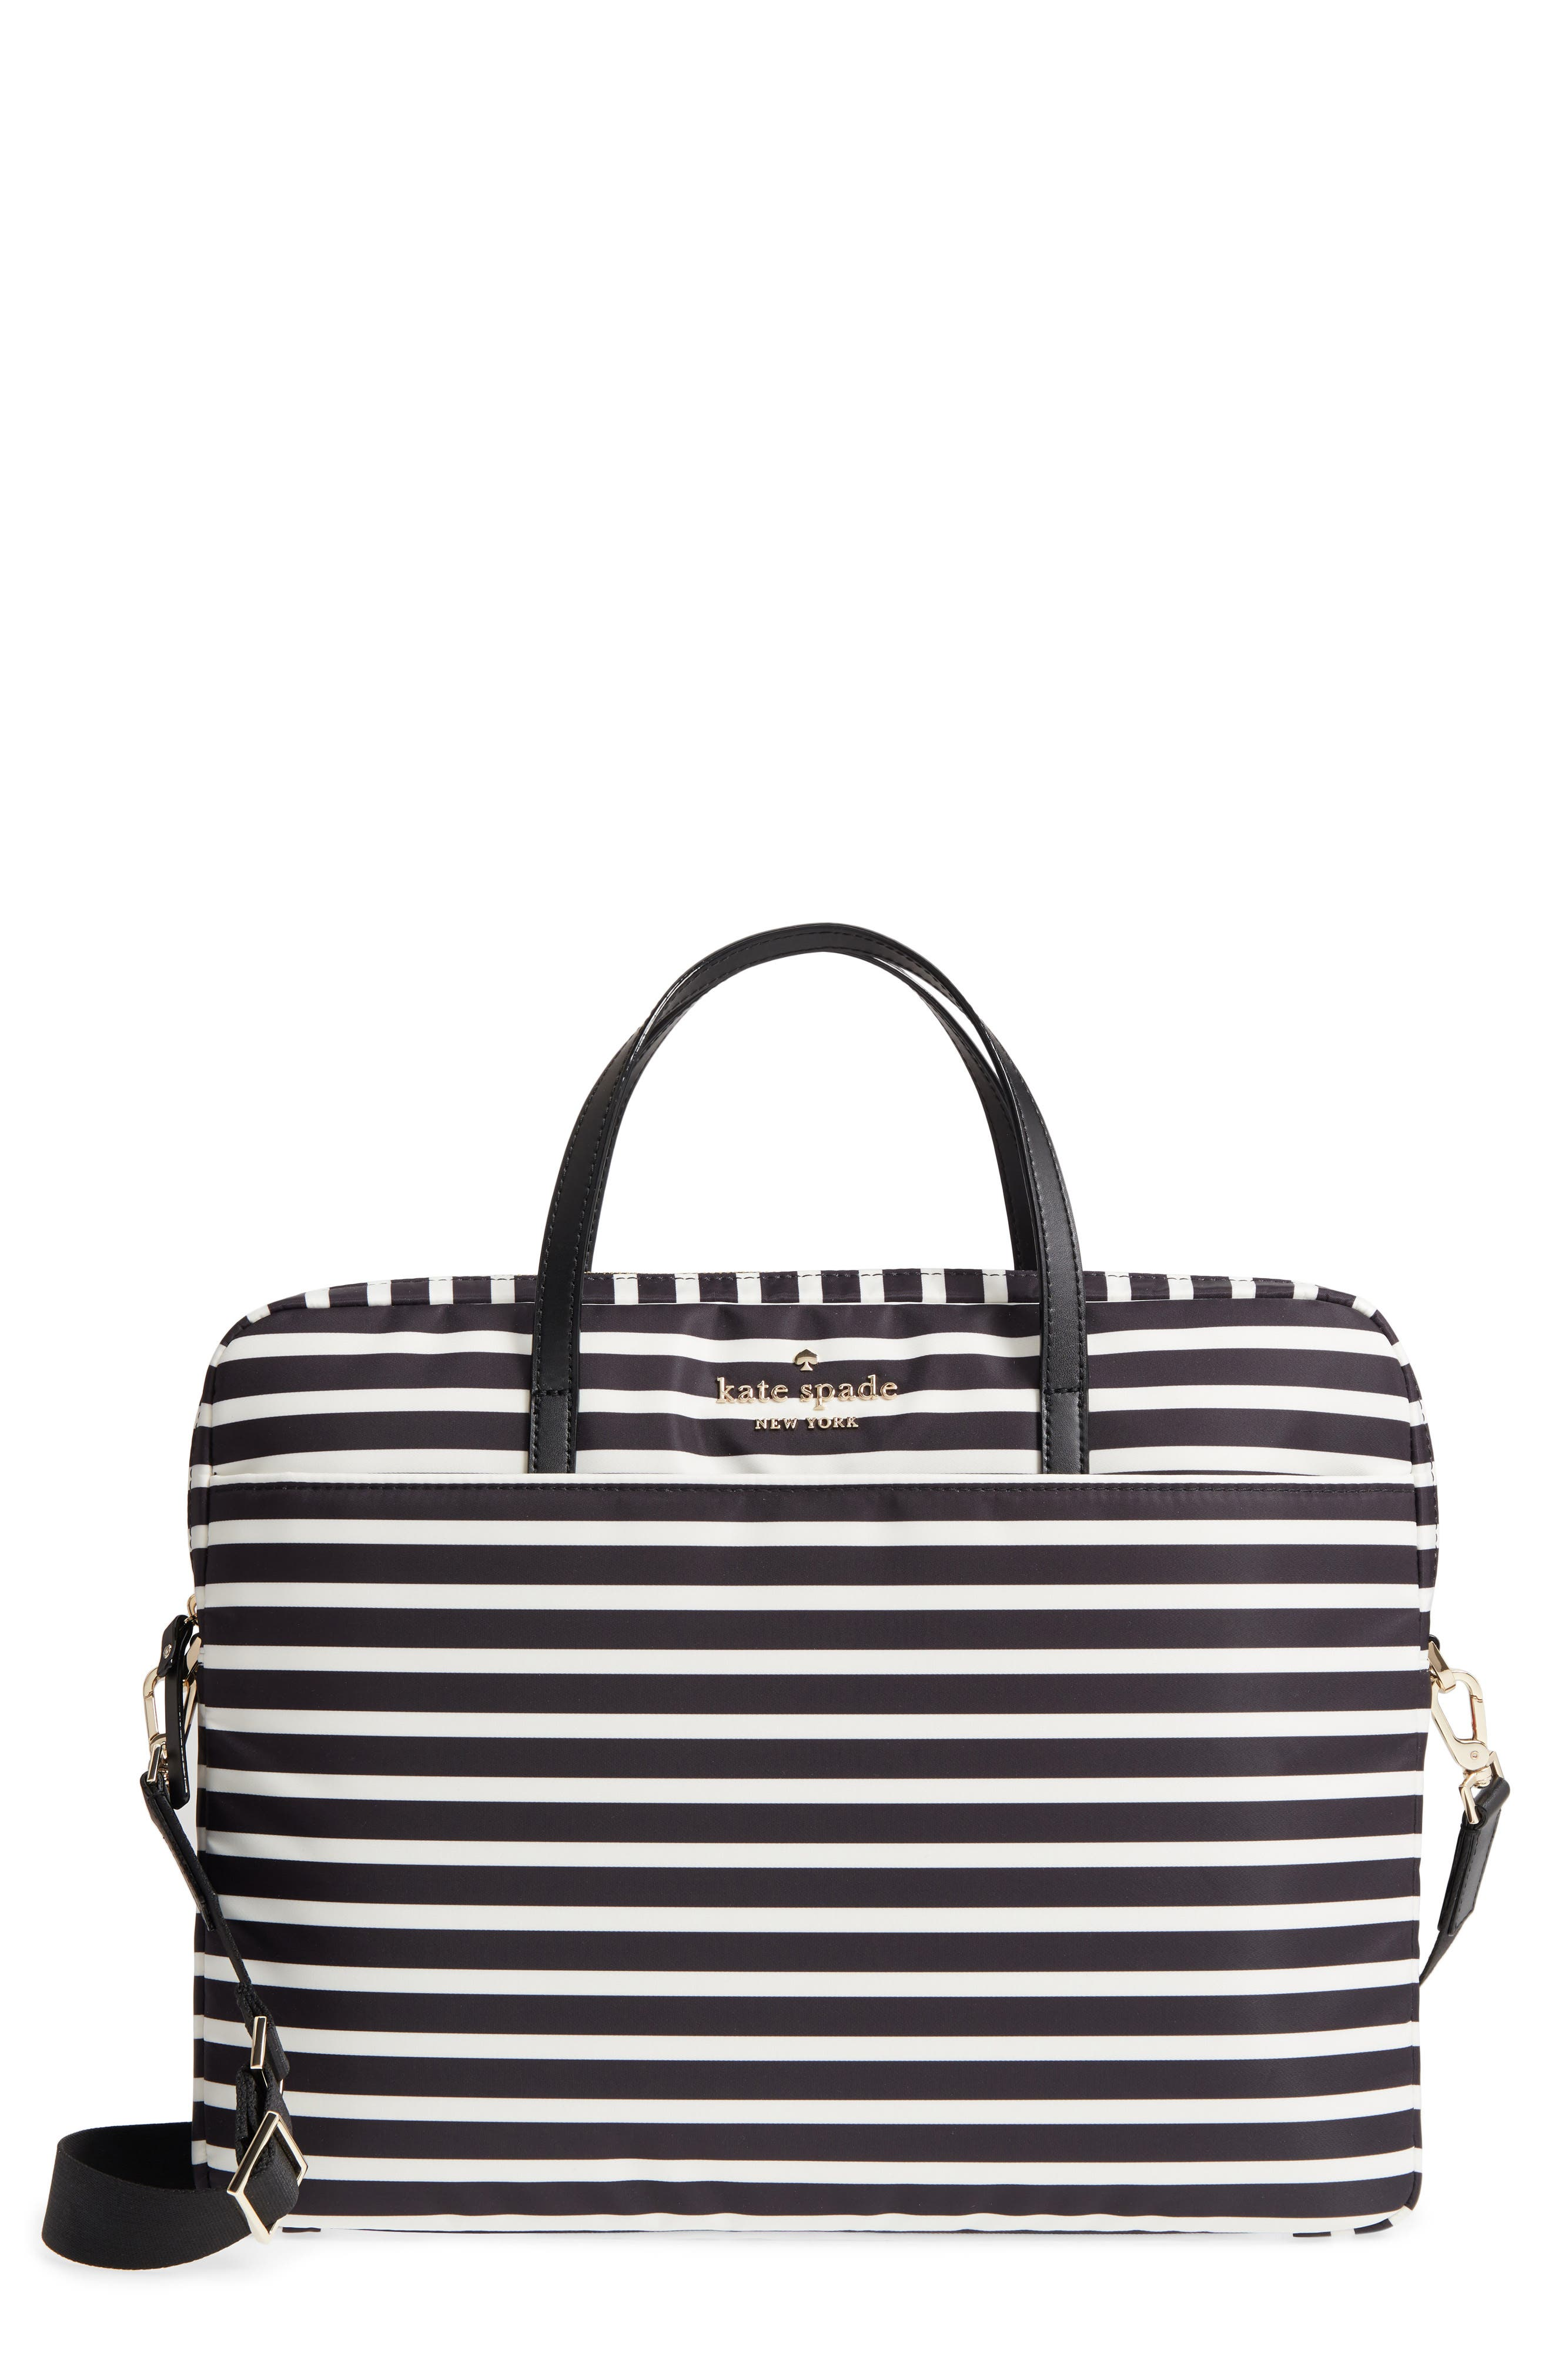 kate spade new york laptop bags